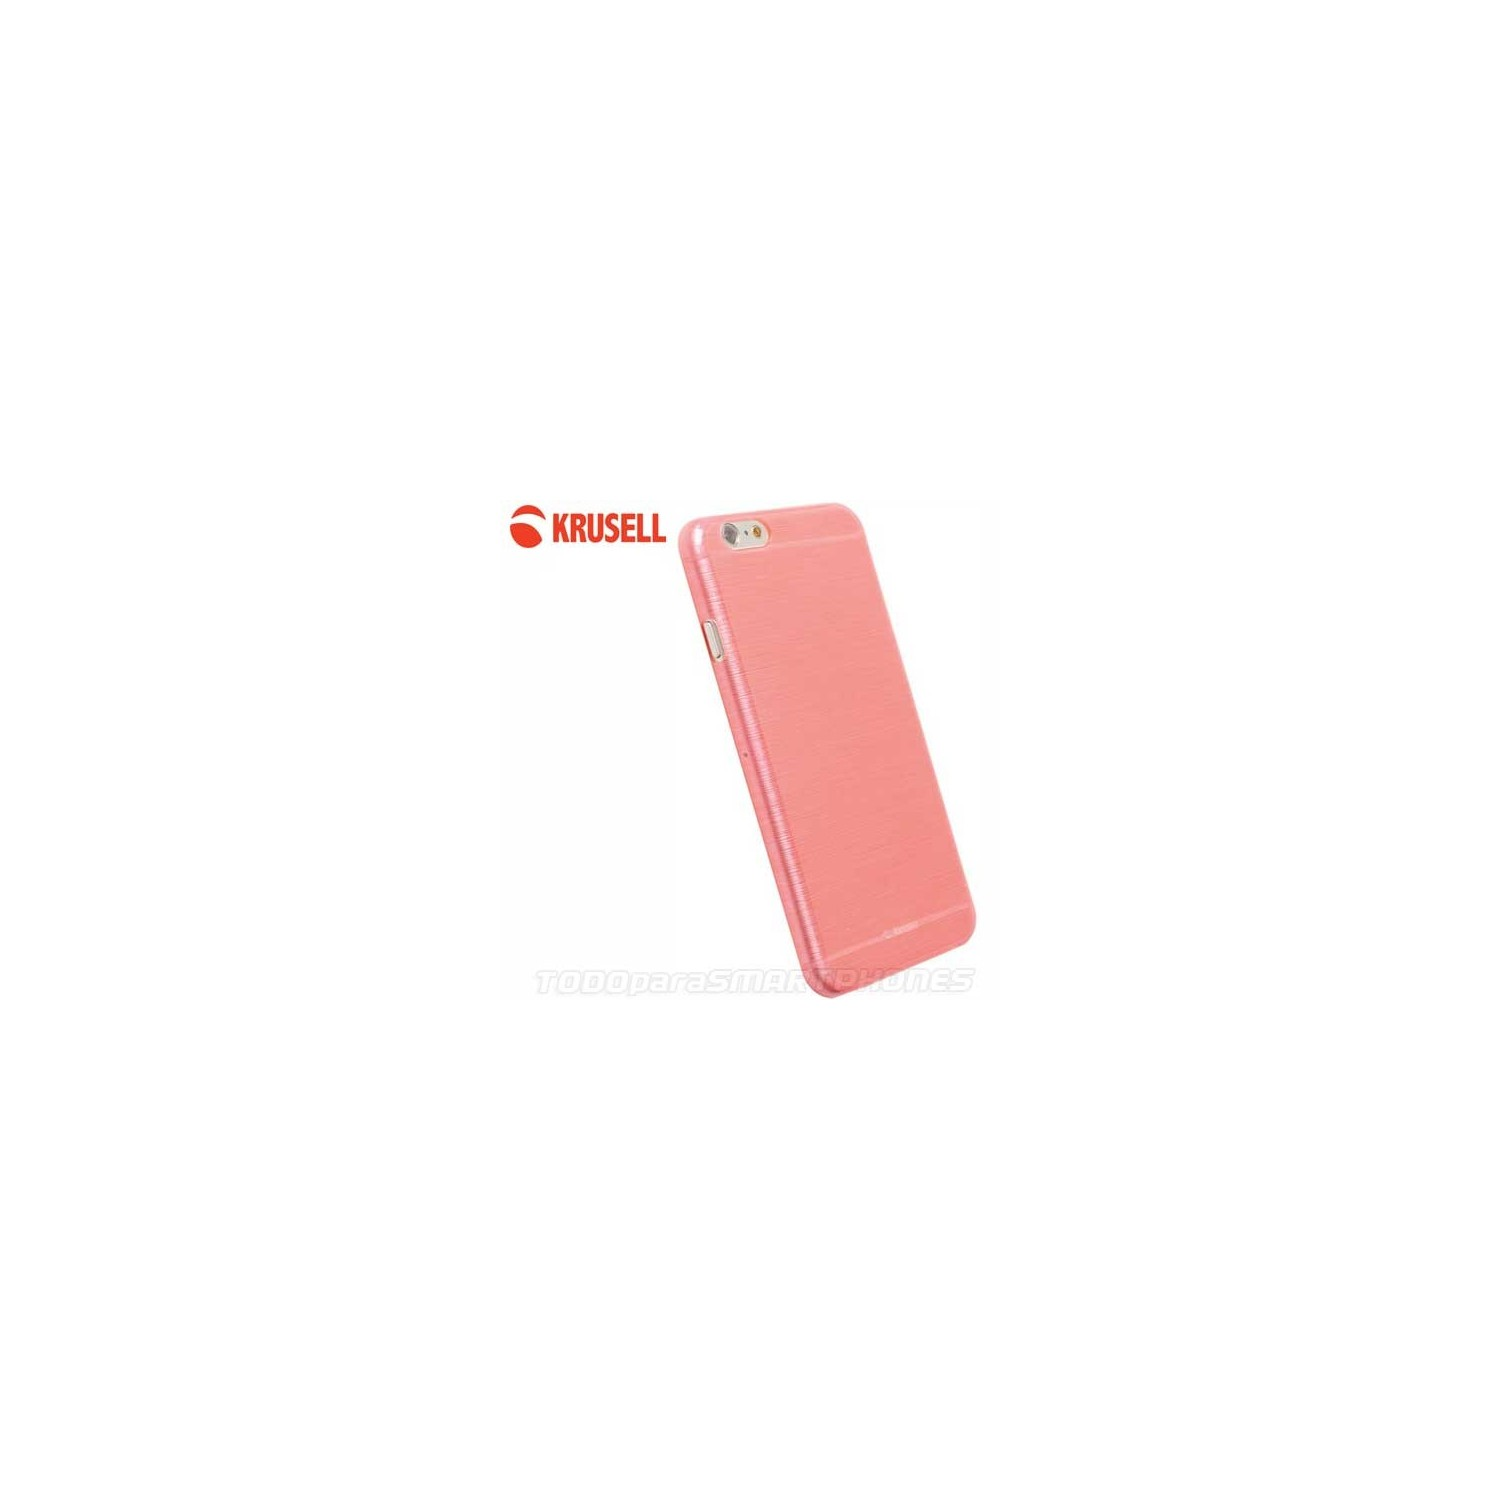 Case - Krusell Boden Cover for iPhone 6s Pink translucid